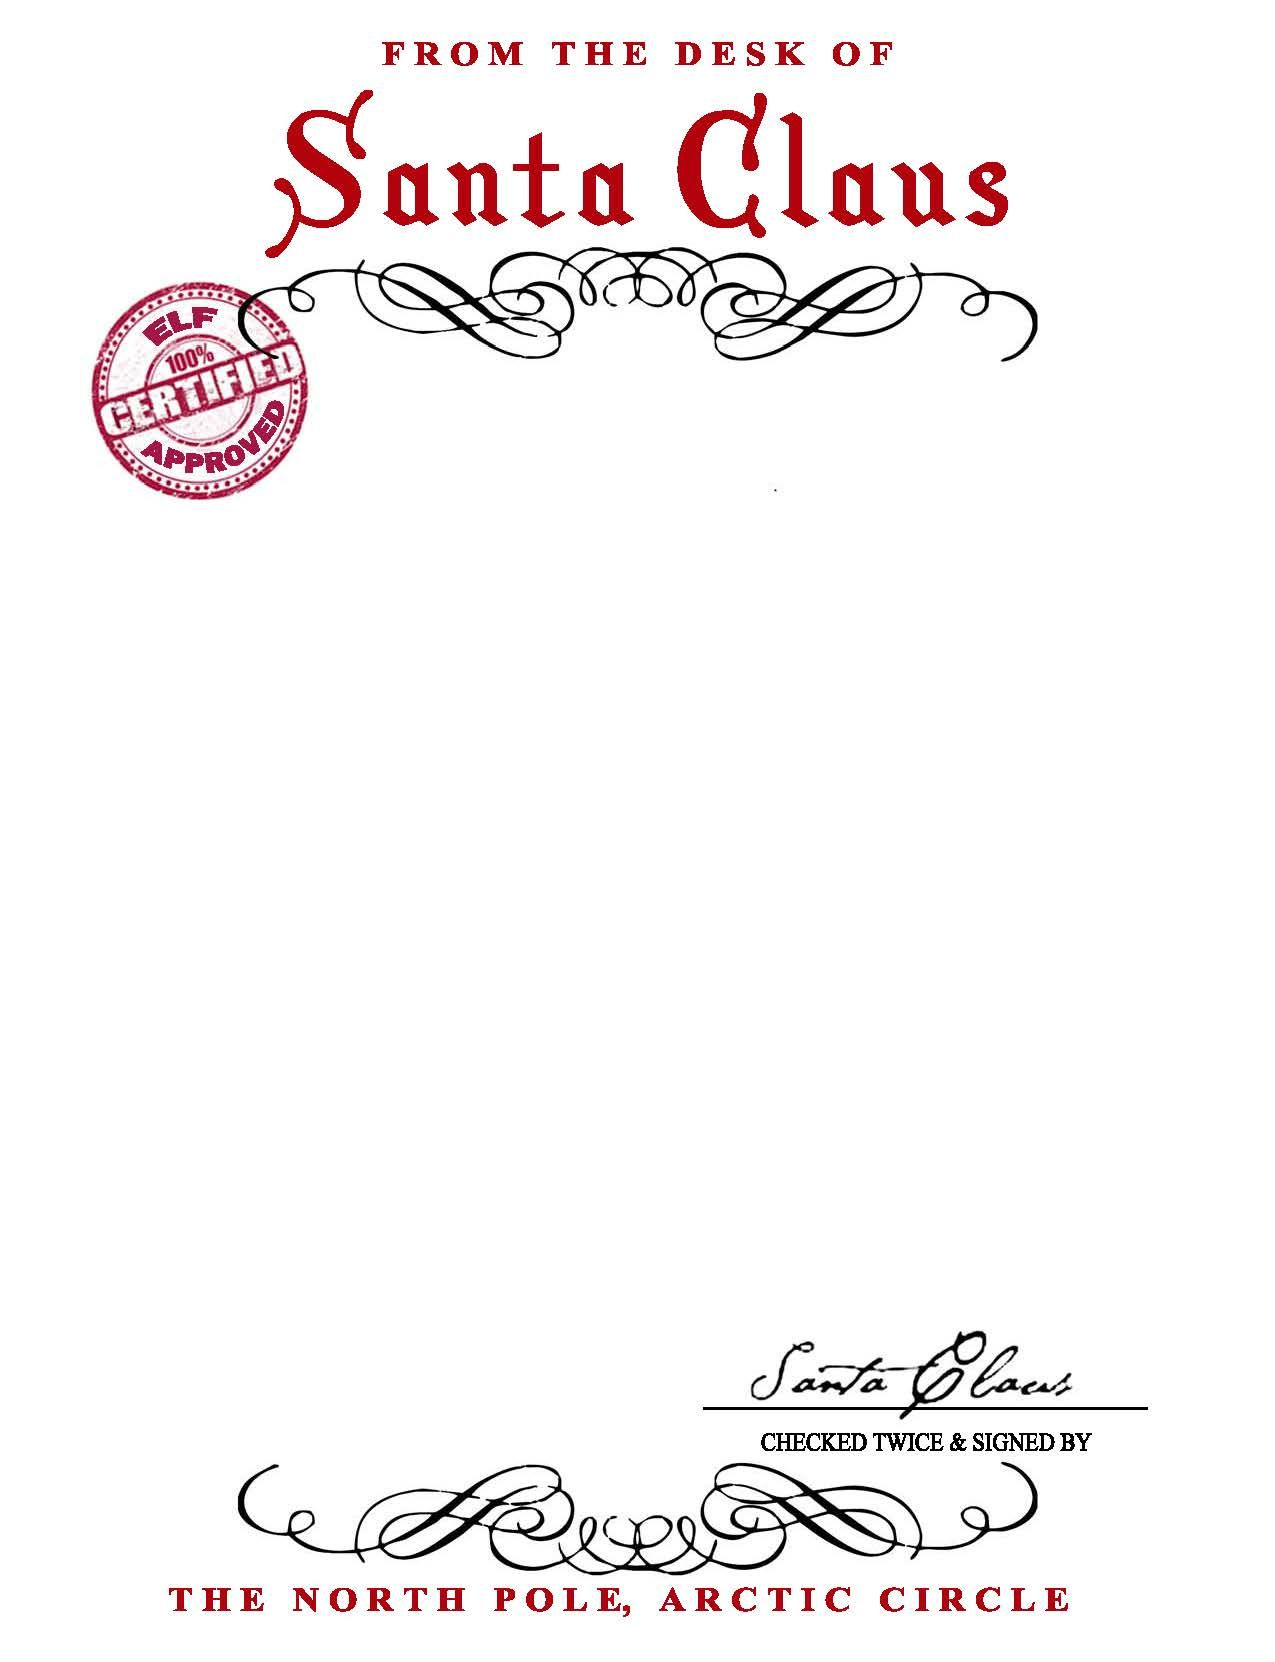 Santa Claus Letterhead.. Will Bring Lots Of Joy To Children - Free Printable Letter From Santa Template